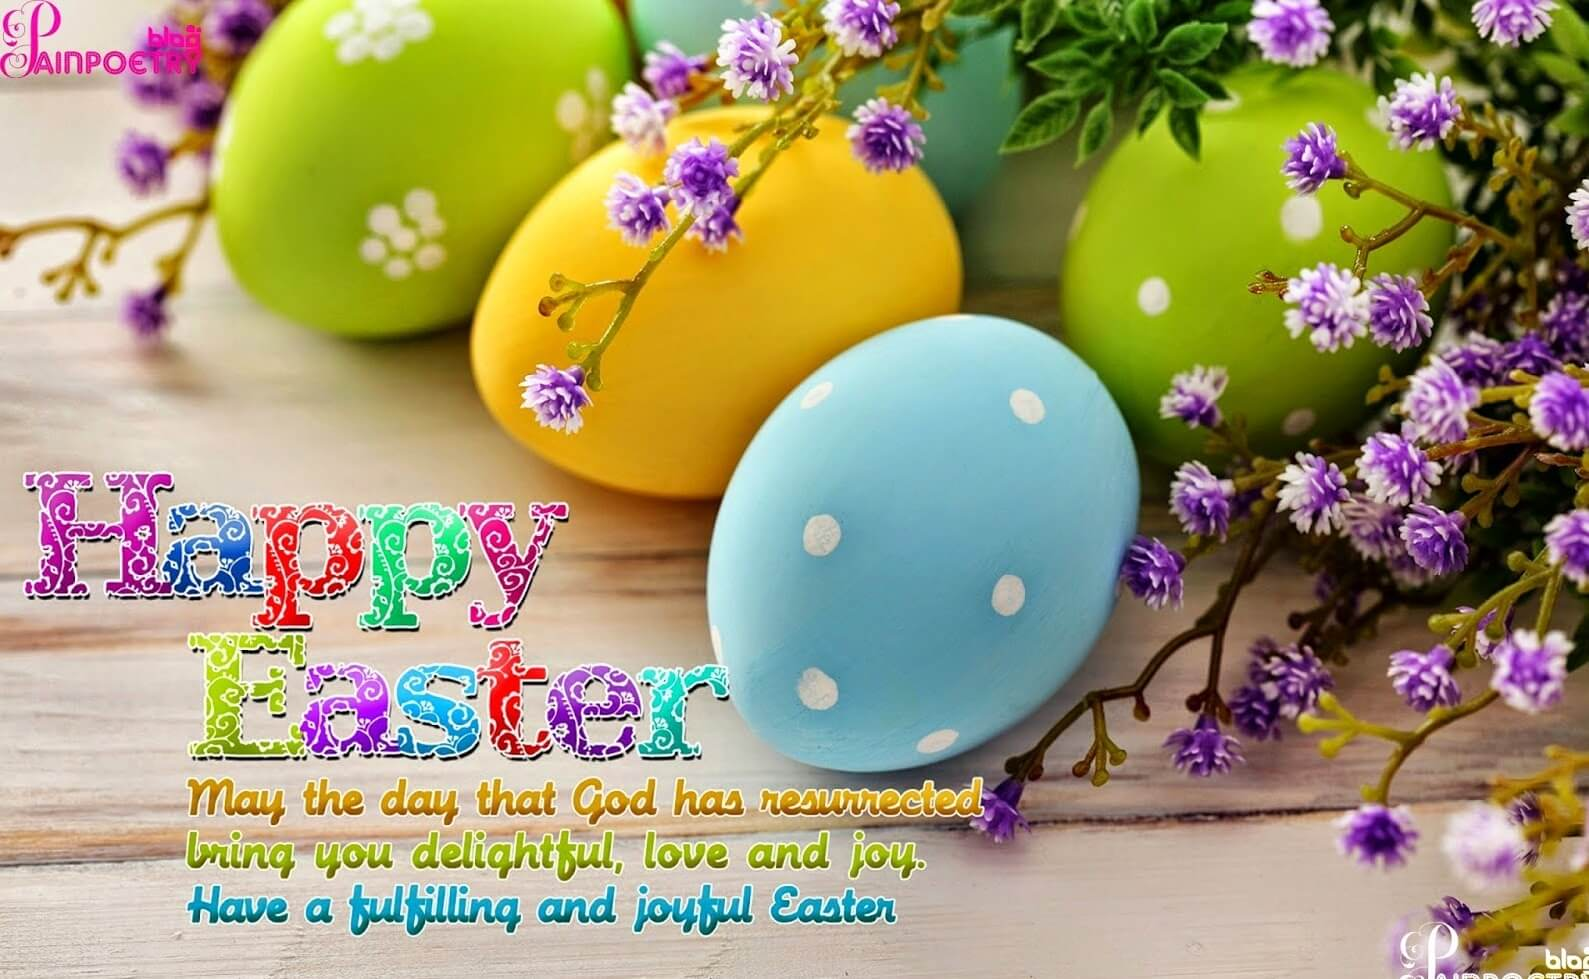 Happy Easter Day Images Wallpapers Greetings Tech Tricks Point